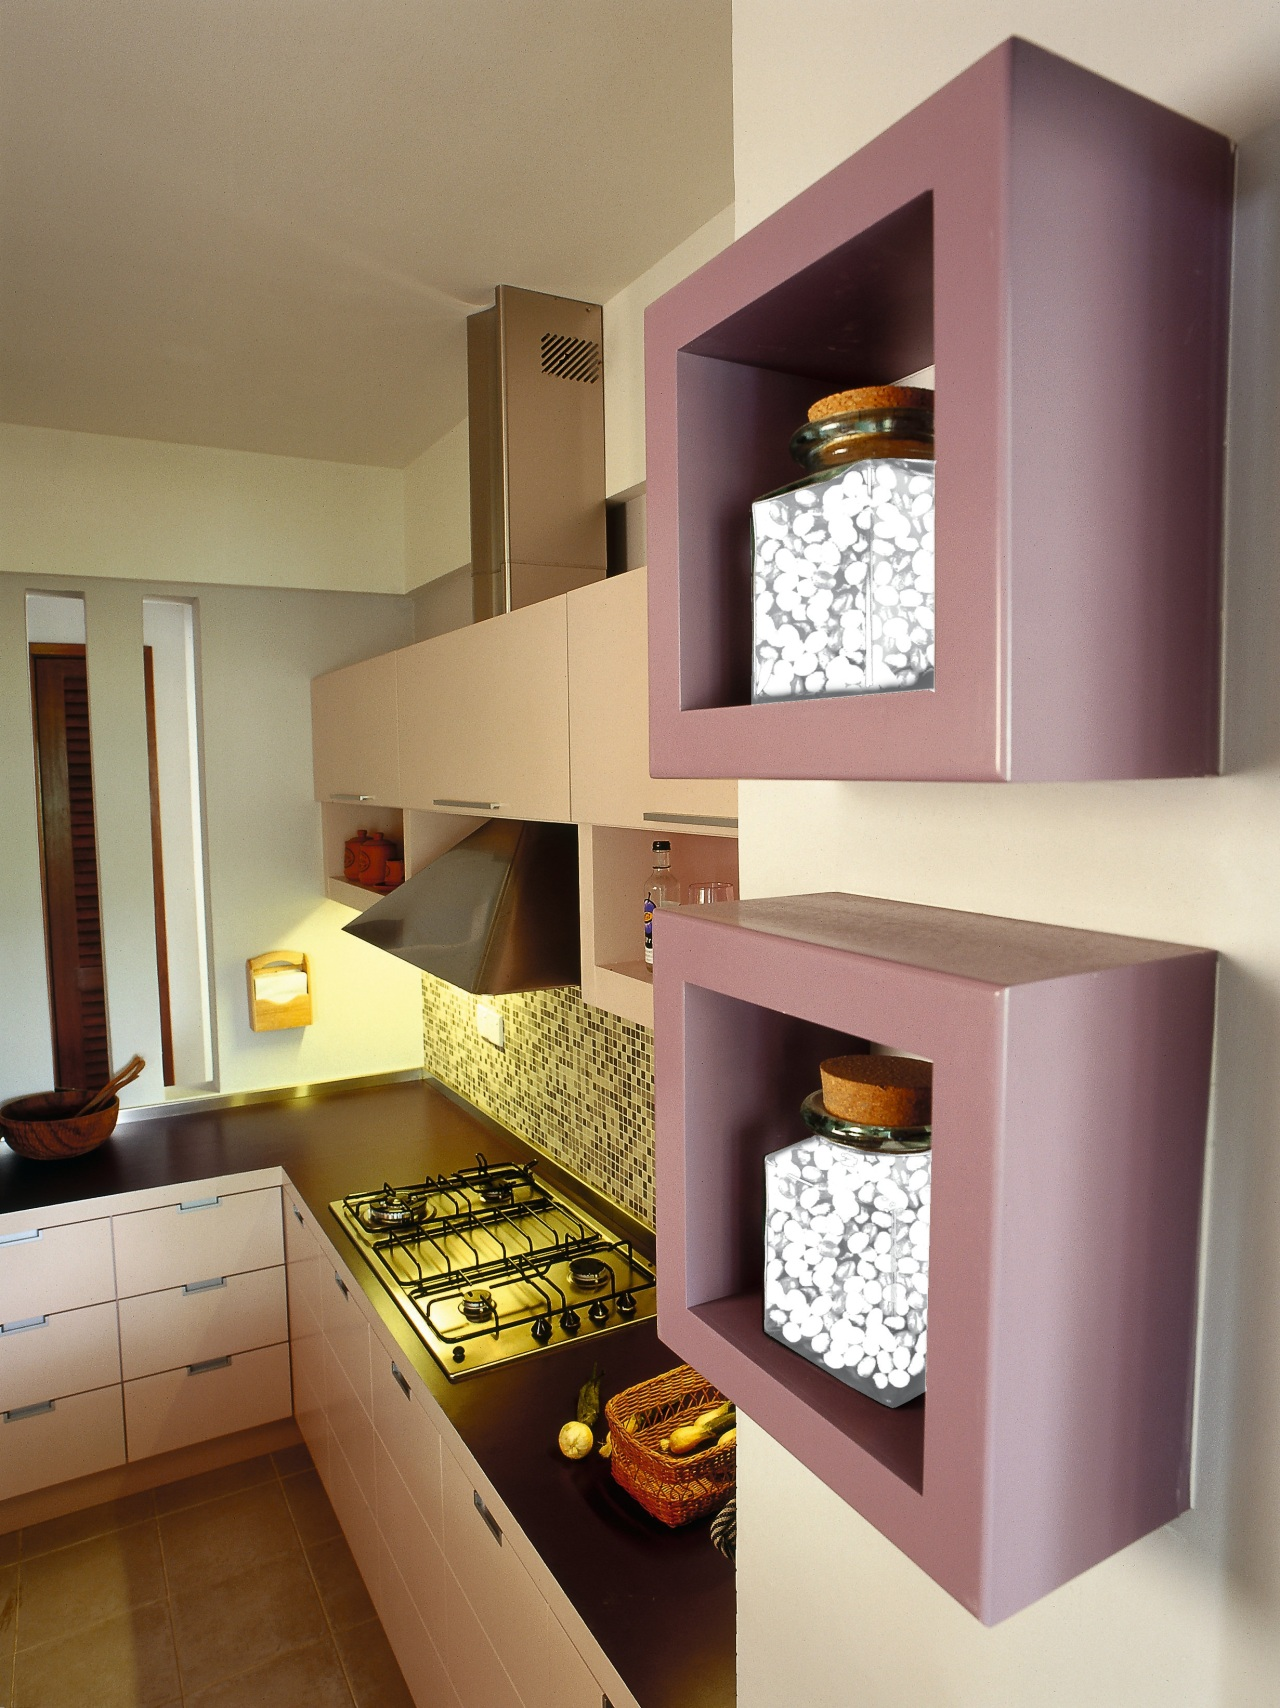 View of this contemporary kitchen cabinetry, countertop, furniture, interior design, kitchen, room, shelf, shelving, brown, gray